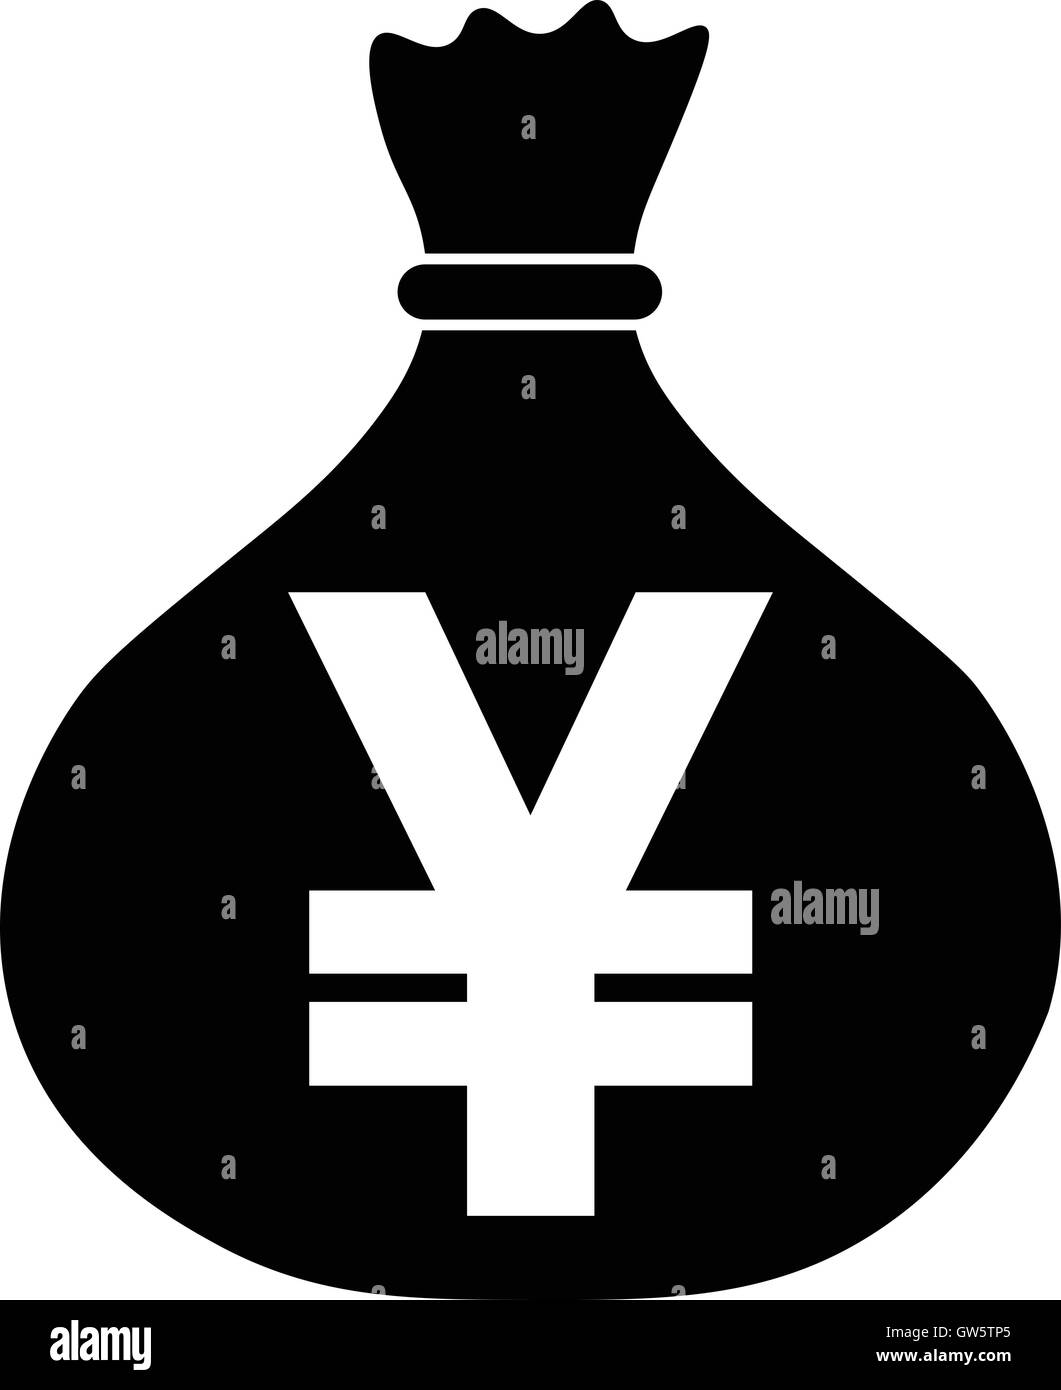 Money bag icon with japan yen chinese yuan symbol jpy cny money bag icon with japan yen chinese yuan symbol jpy cny currency symbol vector illustration biocorpaavc Image collections